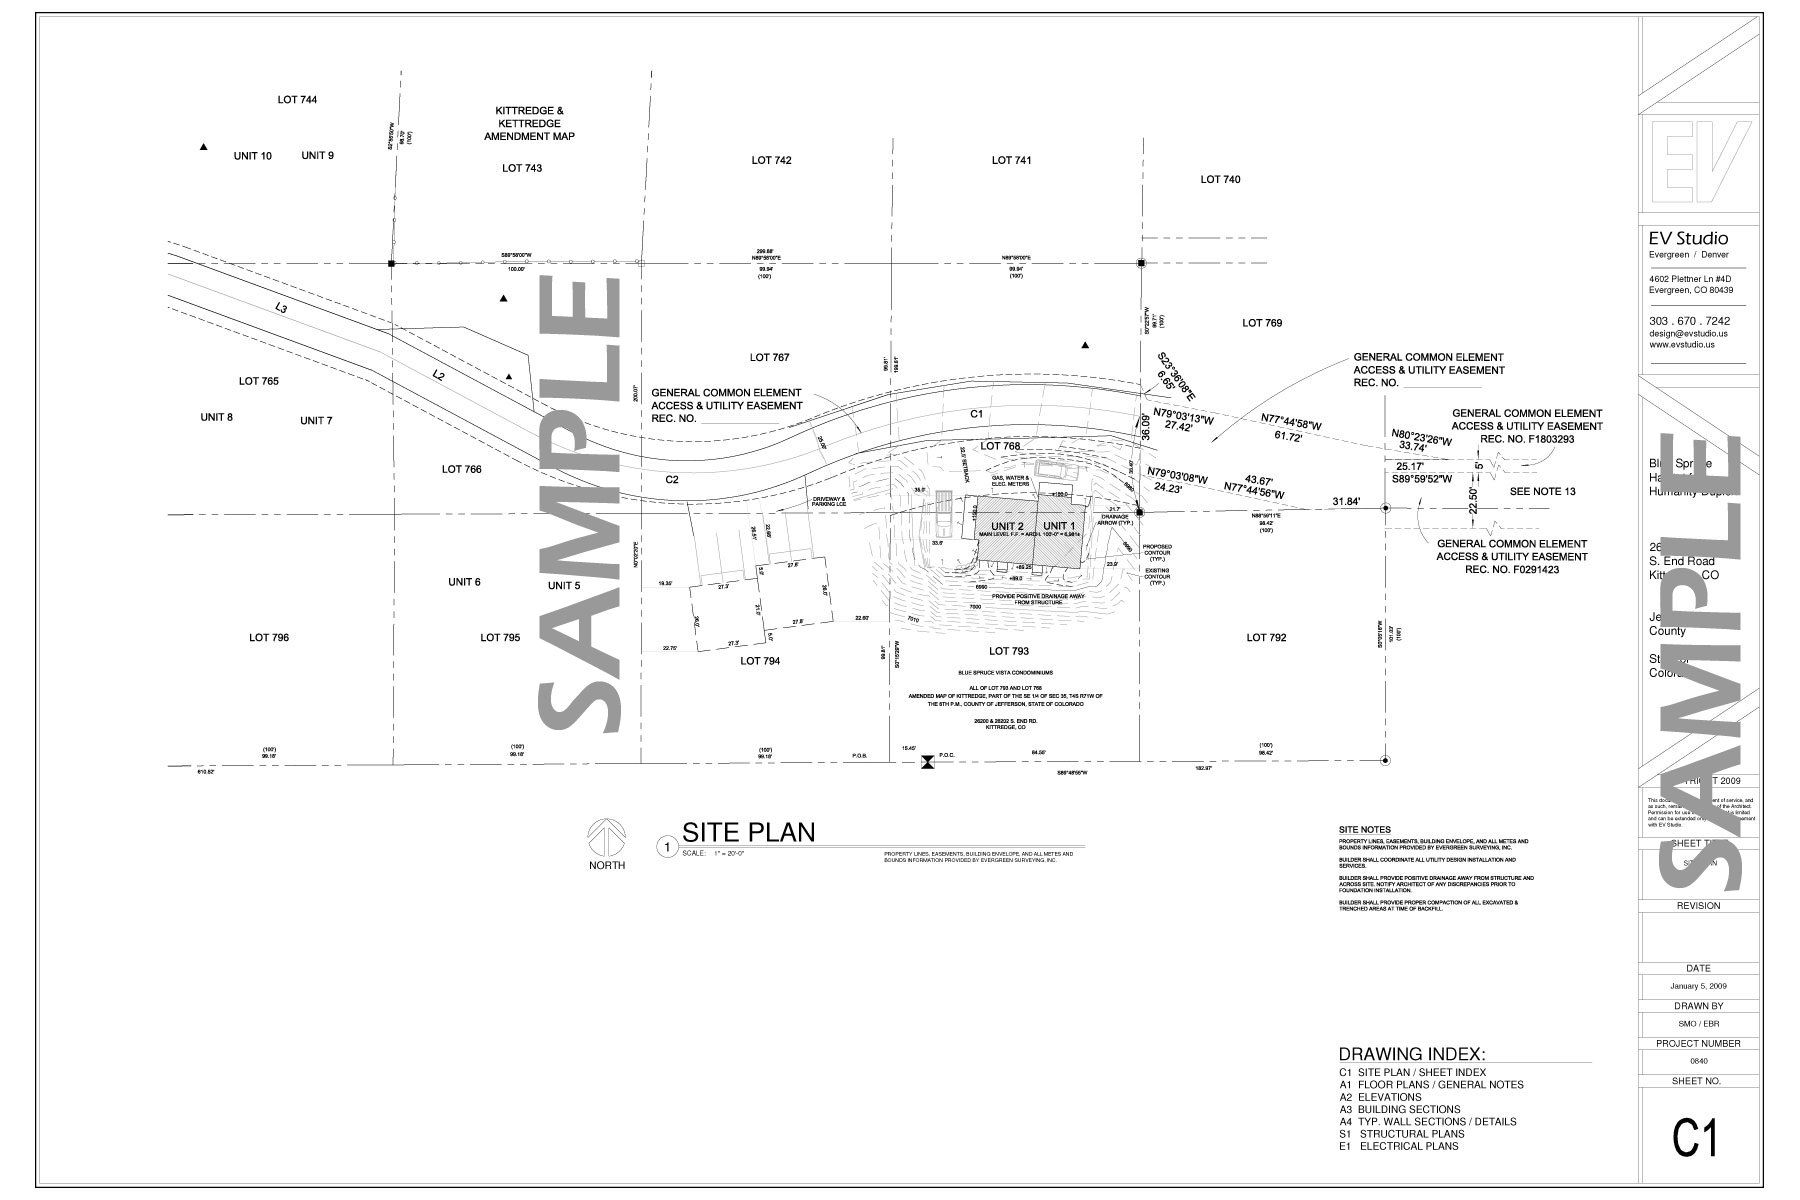 Blue spruce habitat for humanity duplex plans evstudio architect blue spruce habitat for humanity duplex plans evstudio architect engineer denver evergreen colorado austin texas architect malvernweather